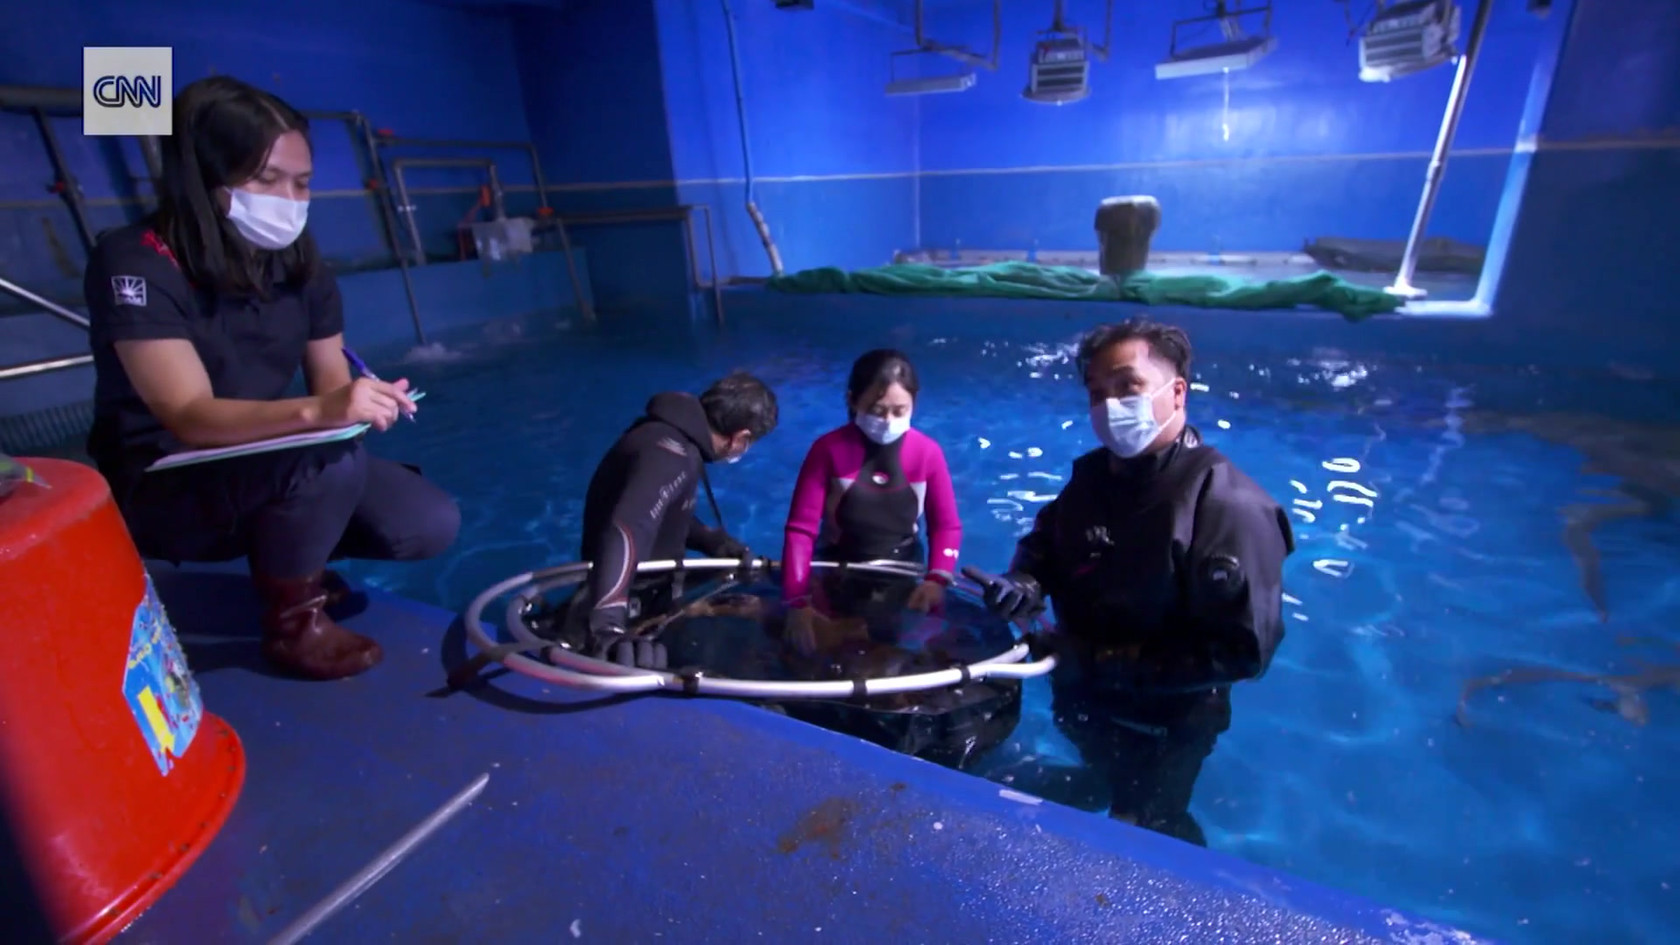 Swimming inside the Dubai Aquarium - CNN Video